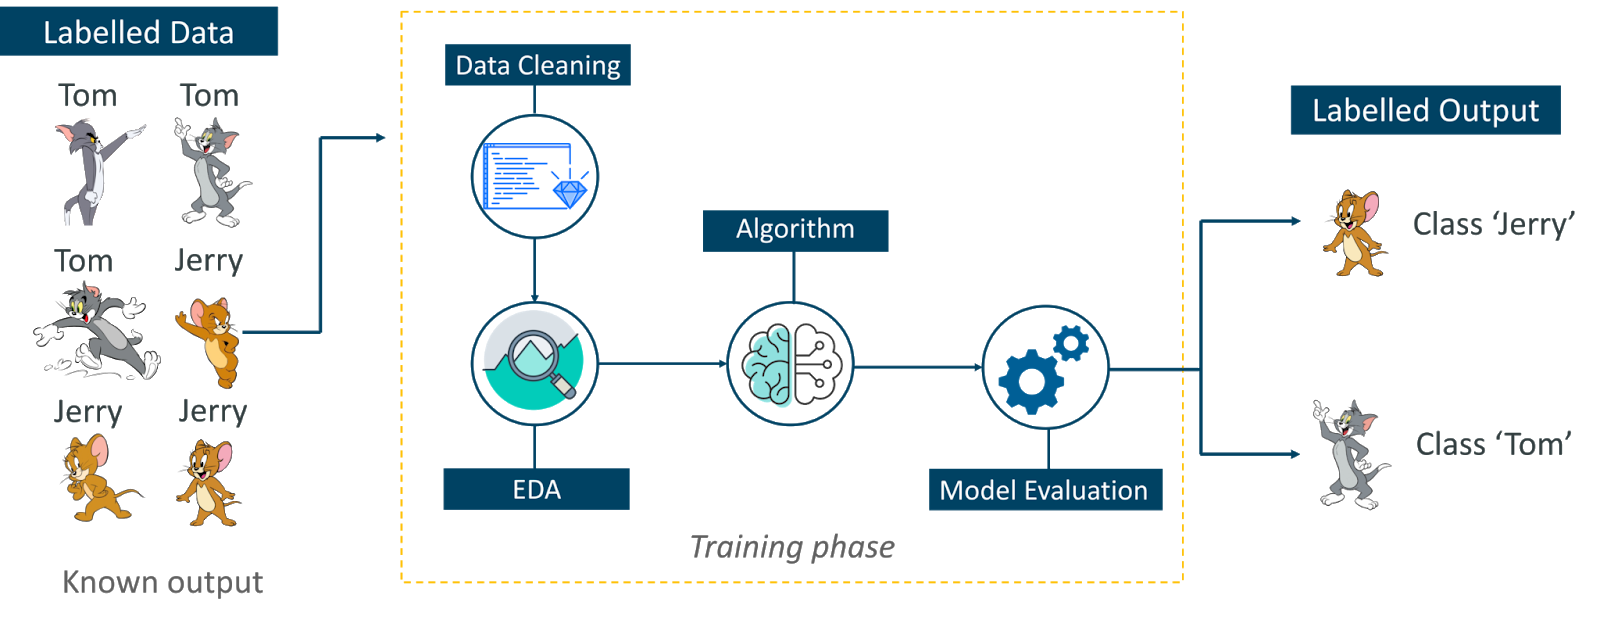 visualised process of creating a model with supervised learning